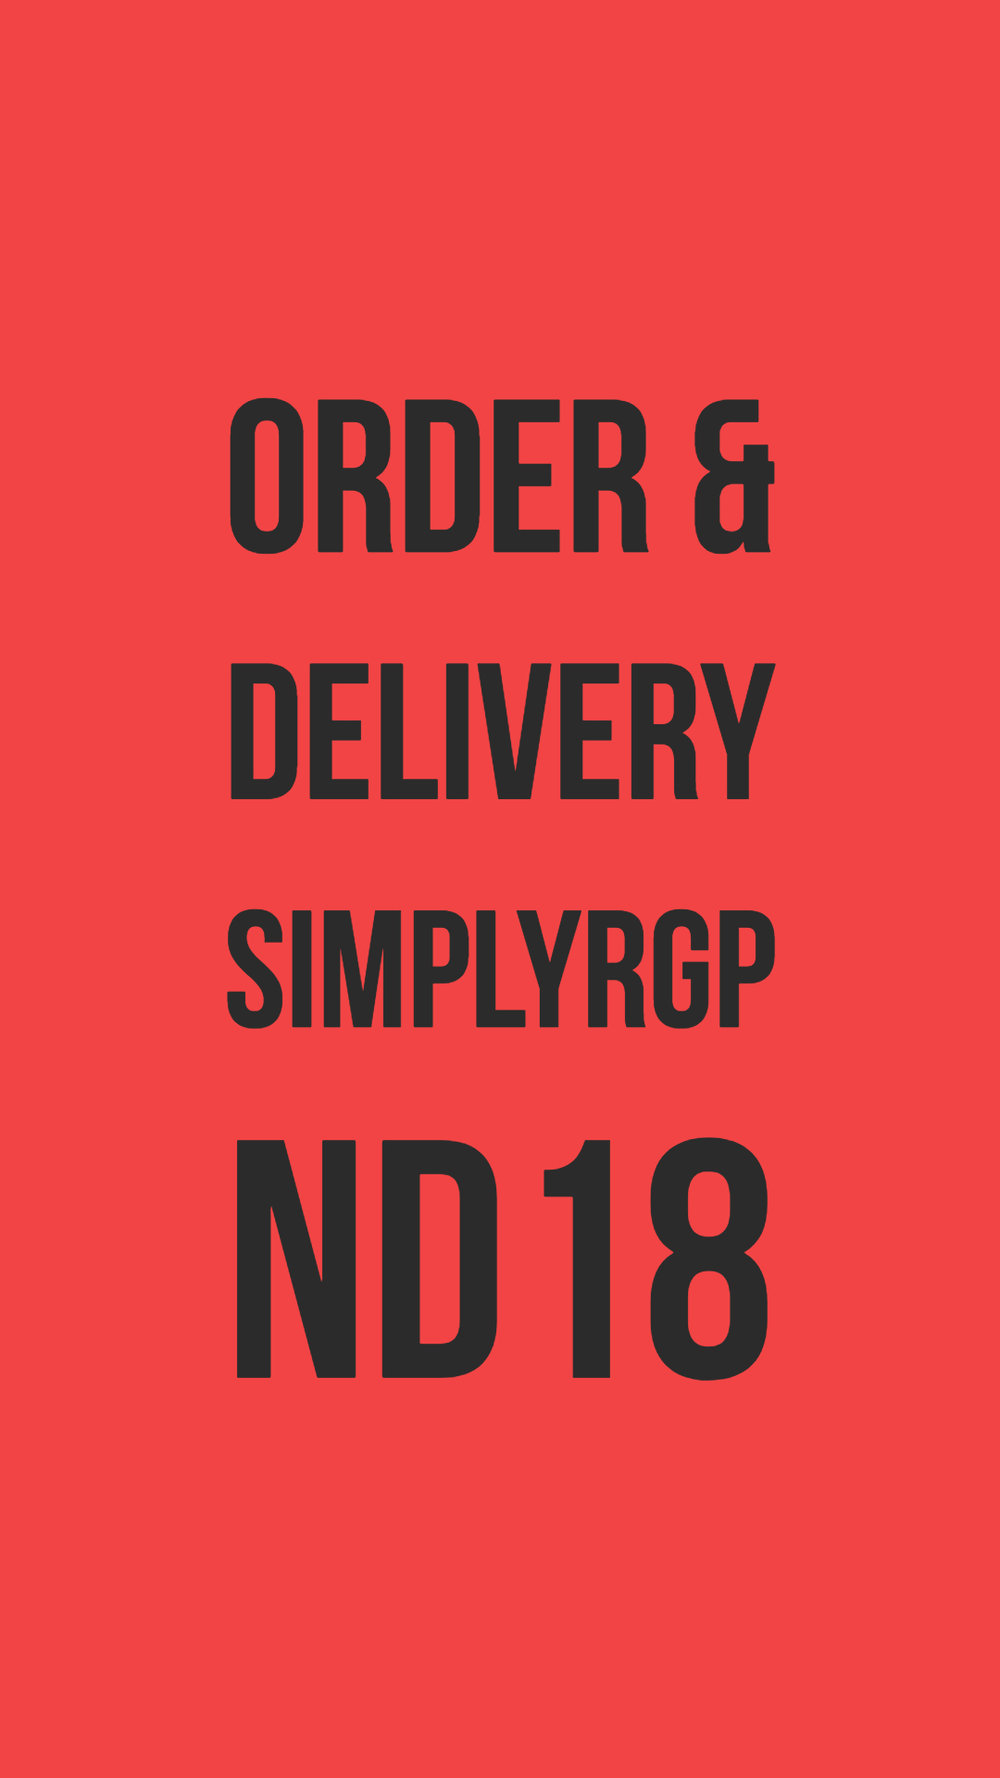 AT DELIVERY STORY.jpg